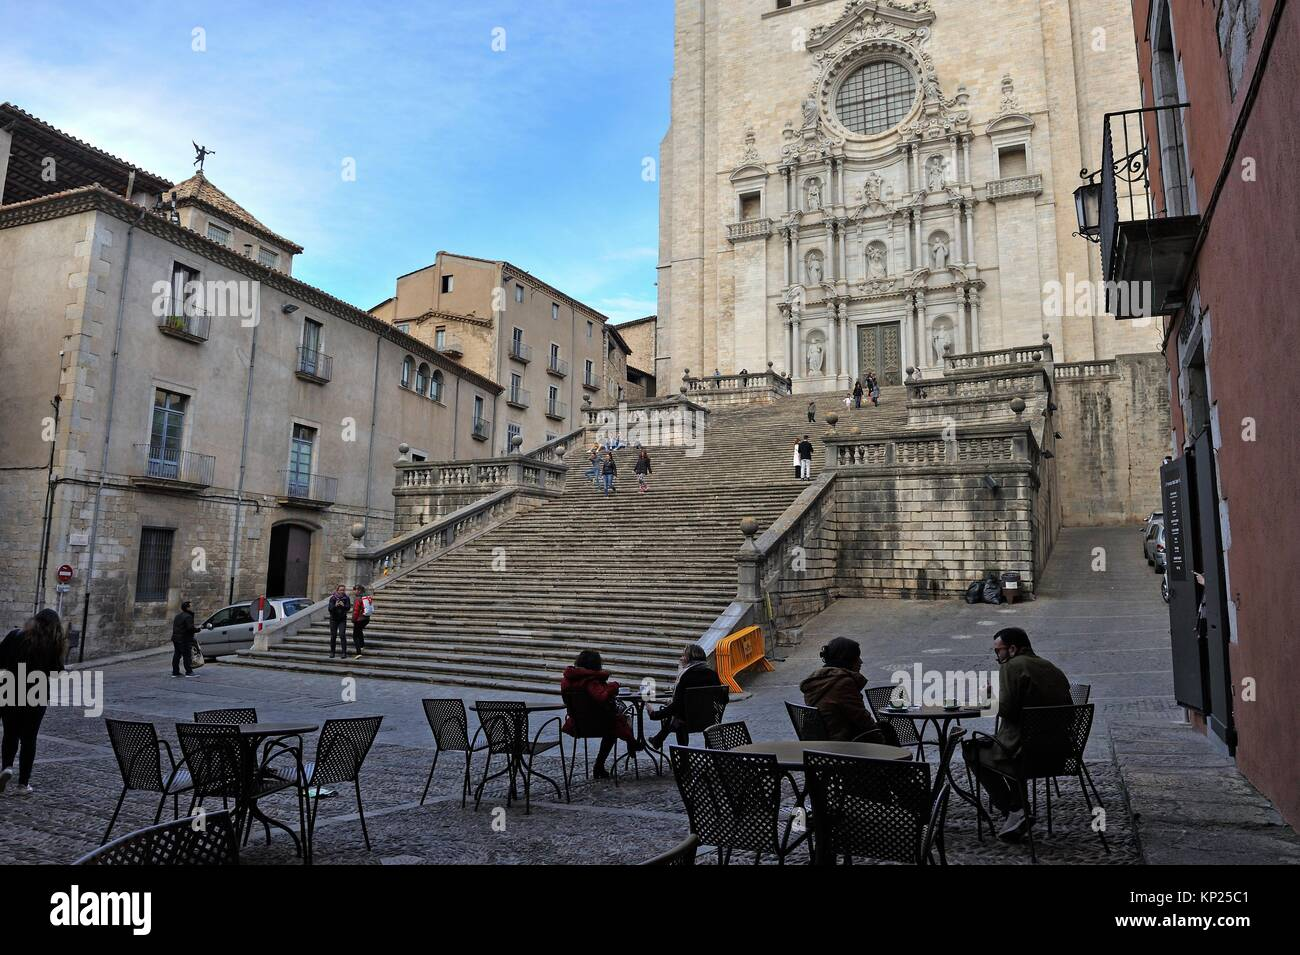 outside cafe on square at the foot of the Cathedral, Girona, Catalonia, Spain, Europe. - Stock Image